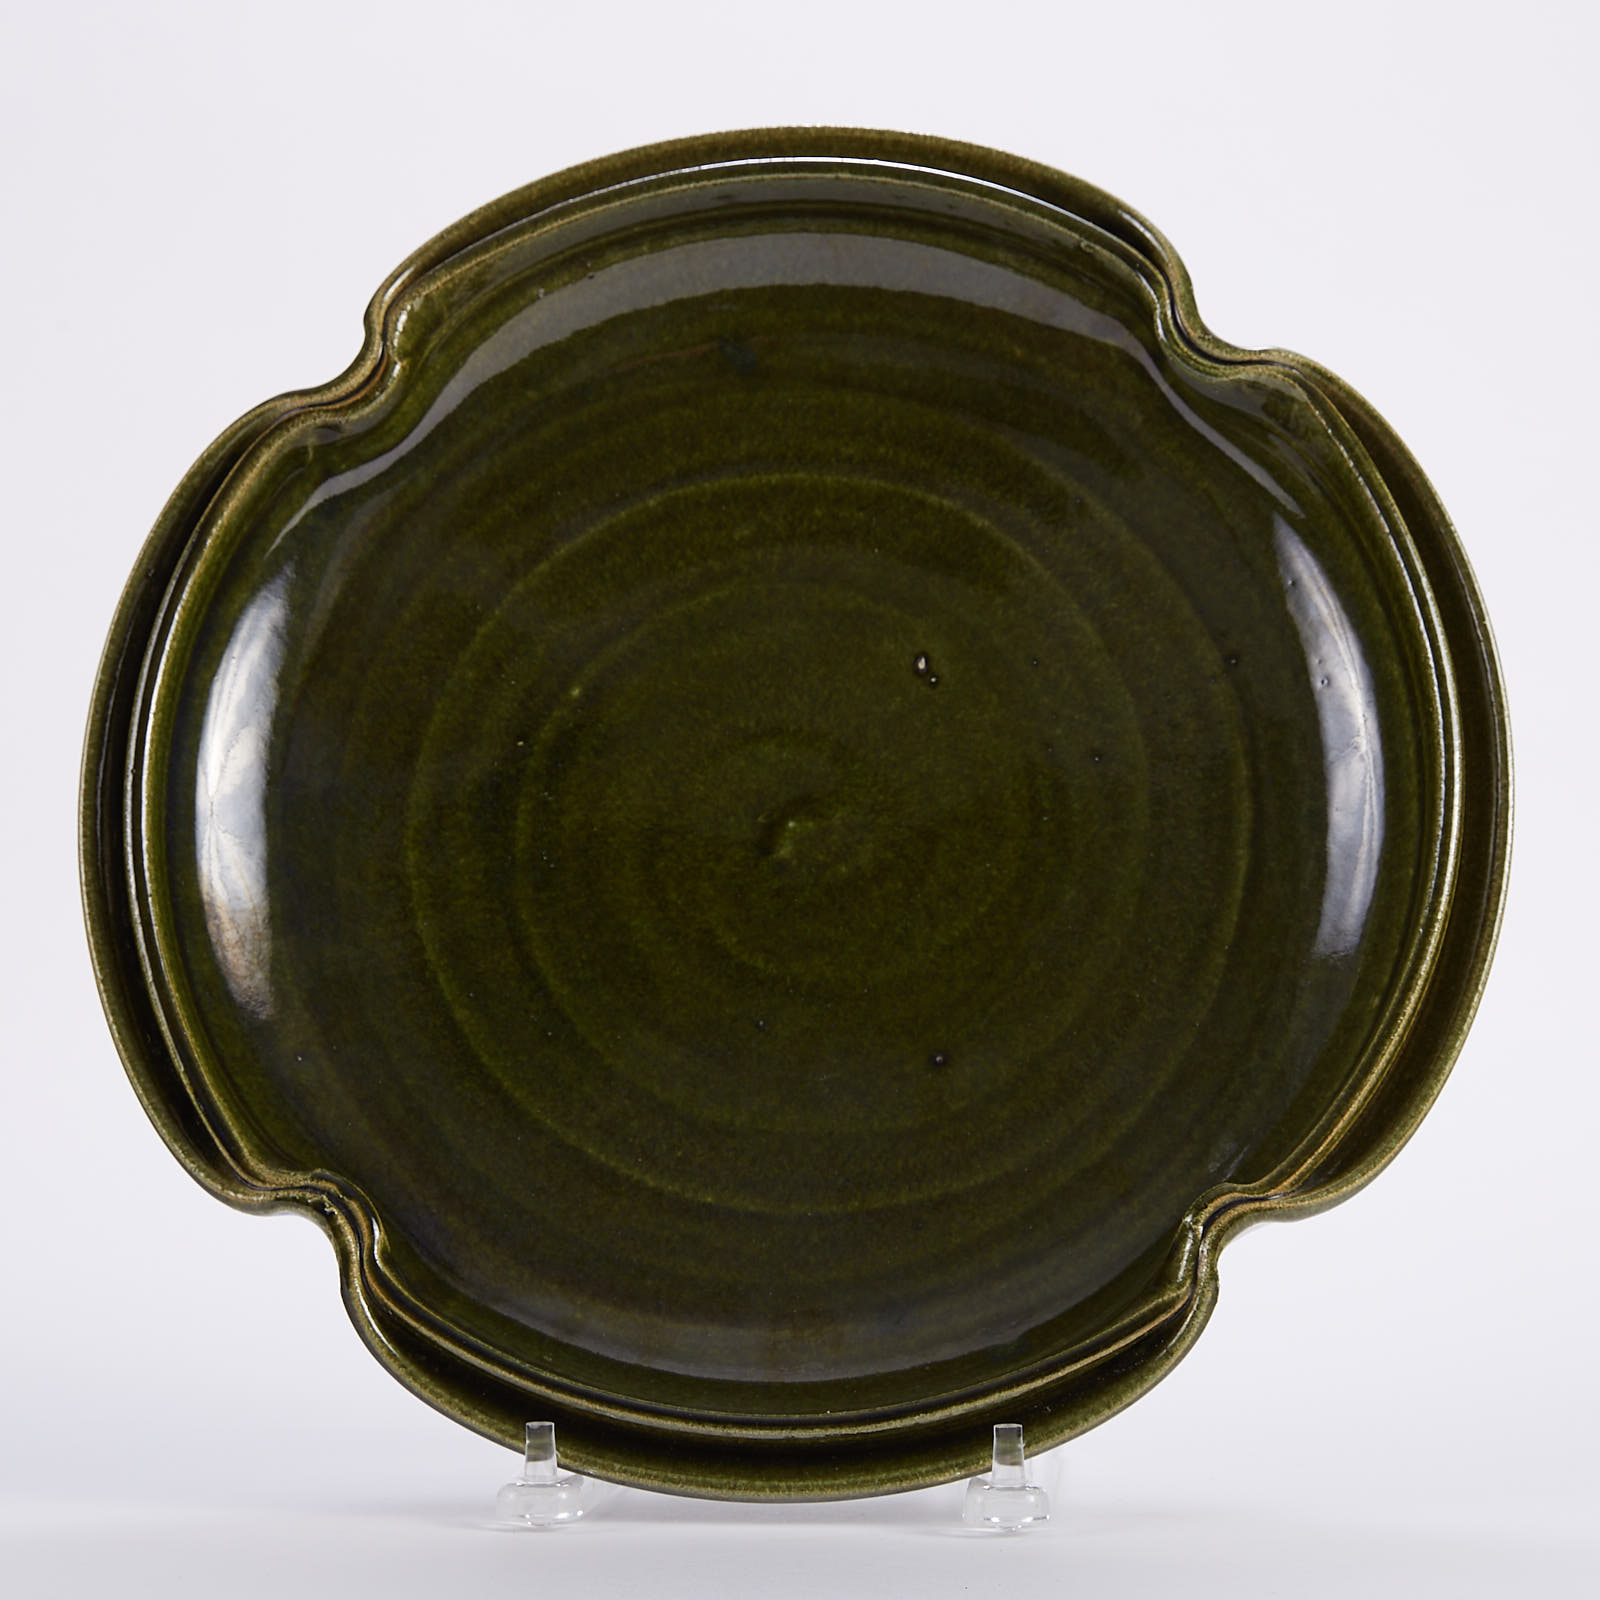 Lot 008: Warren MacKenzie Large Green Studio Pottery Platter